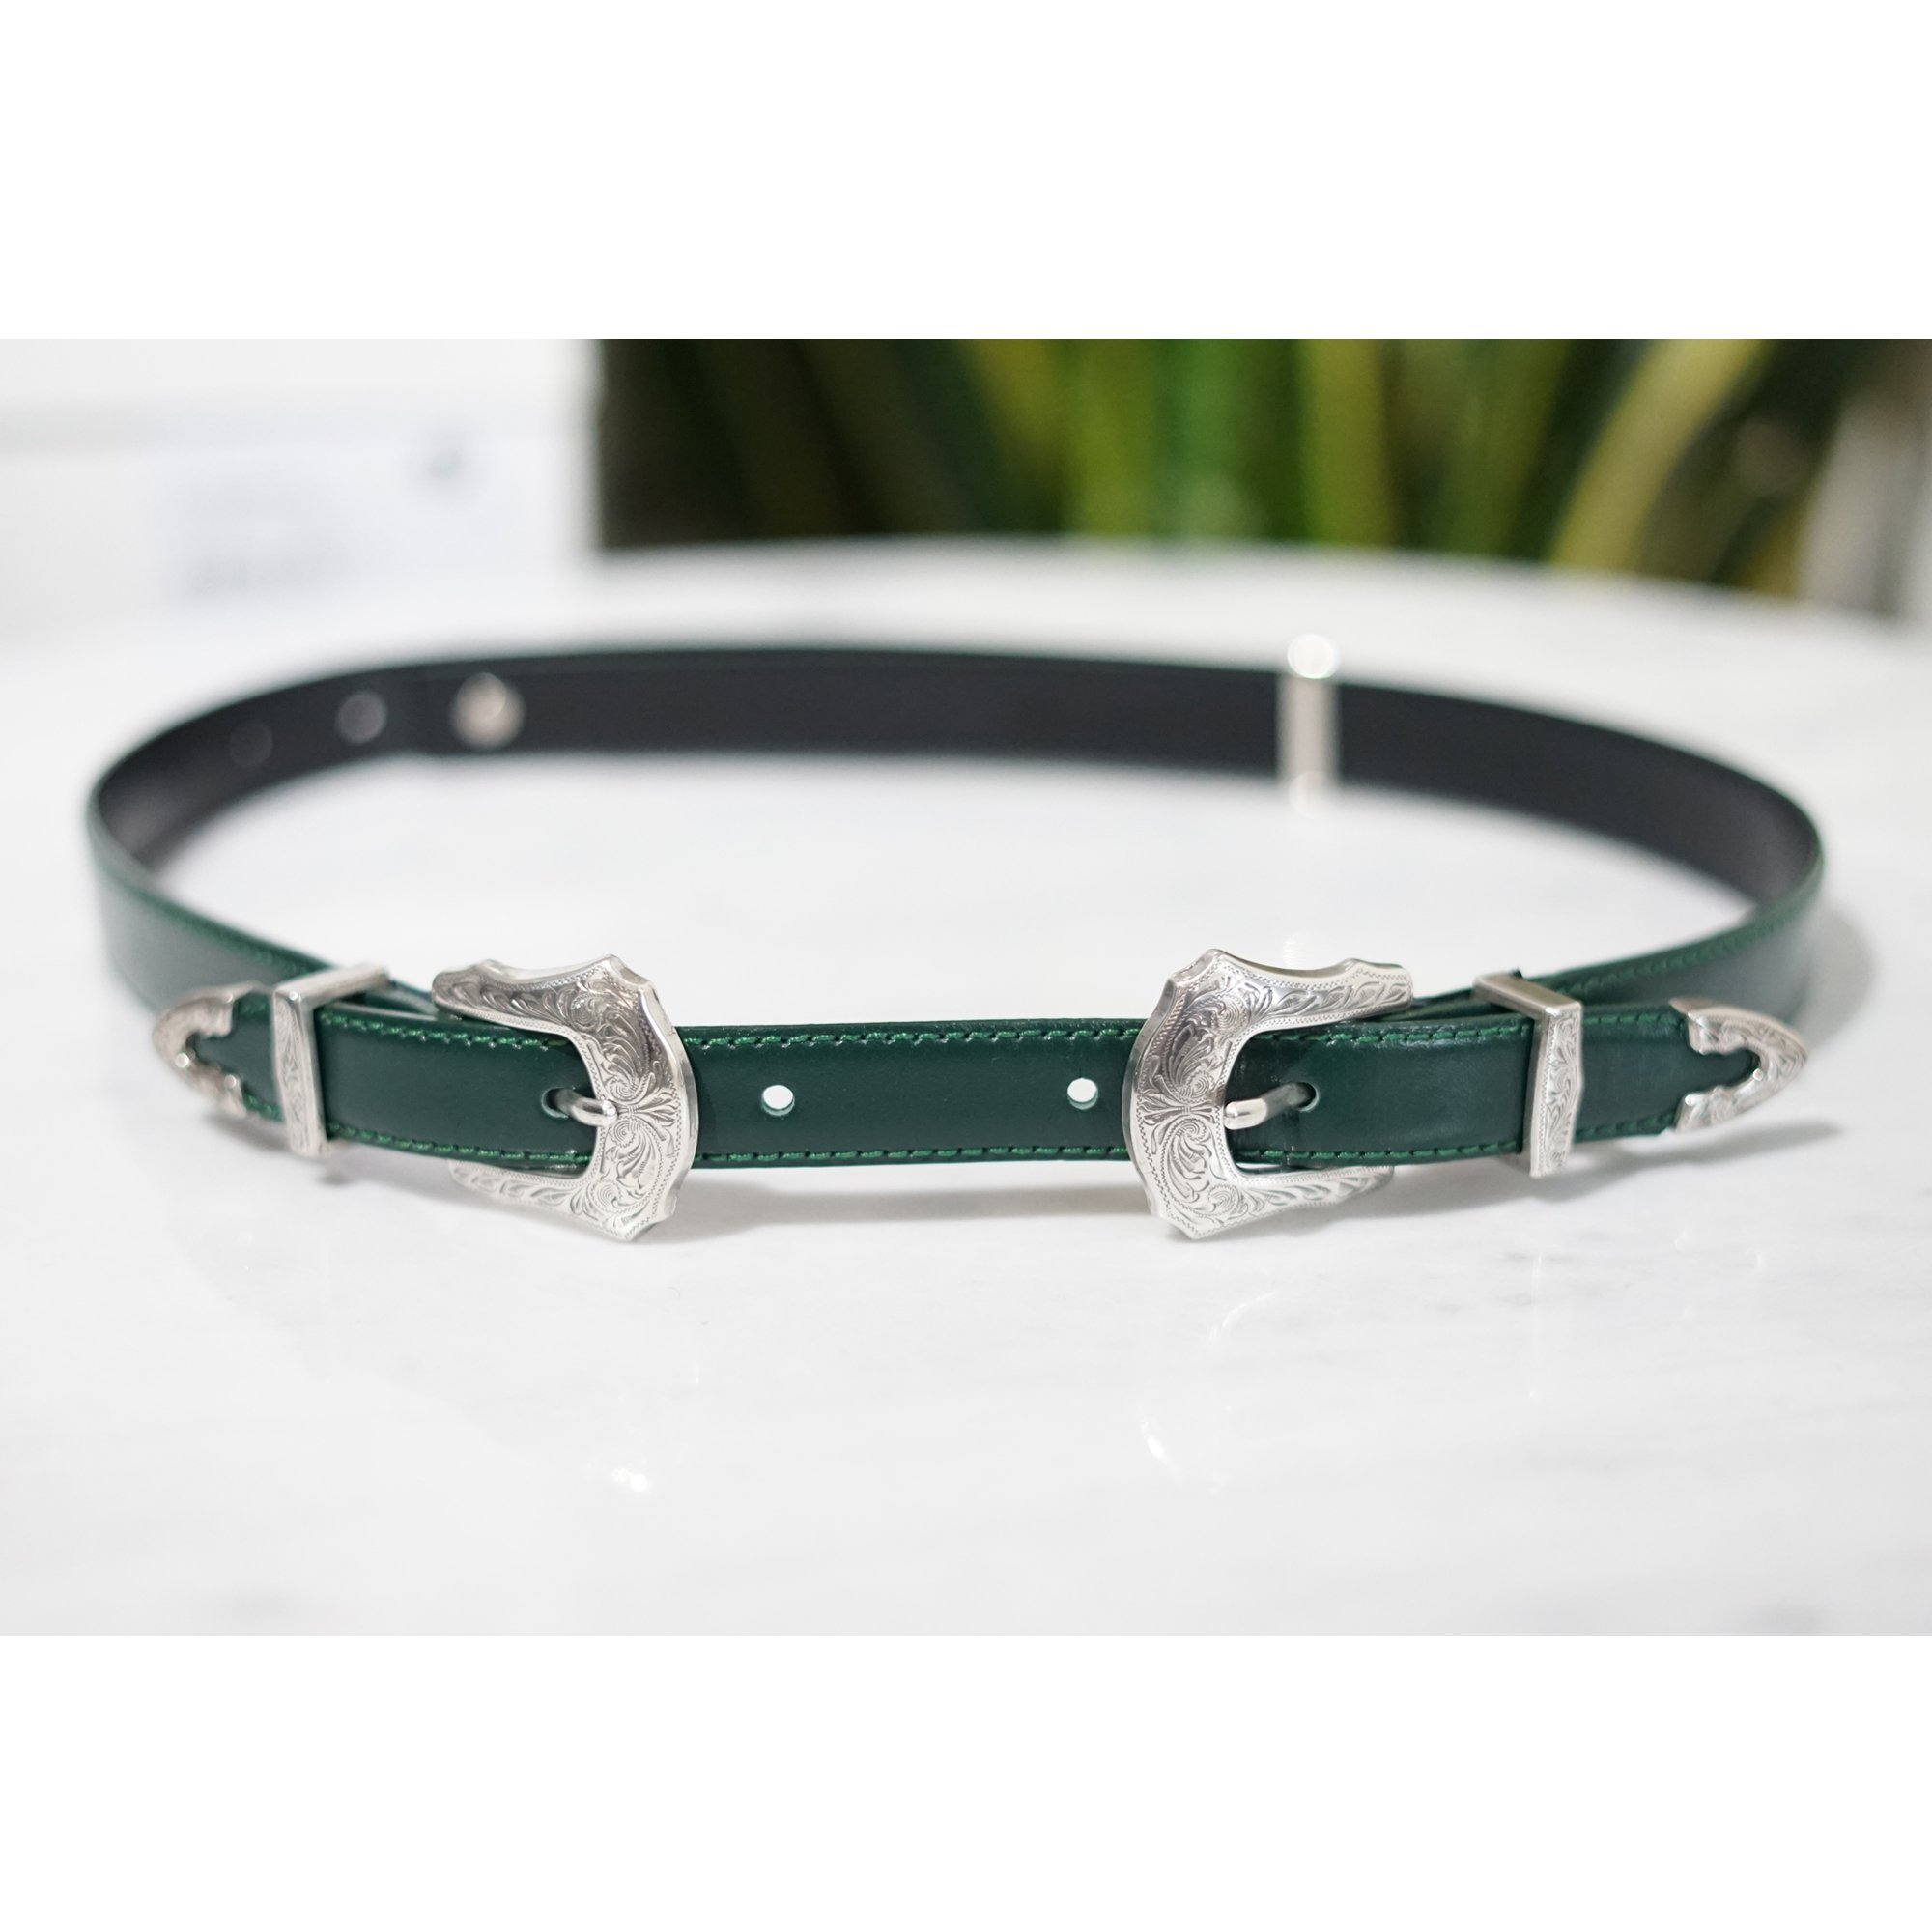 TOGA VIRILLIS-METAL BUCKLE LEATHER BELT GREEN